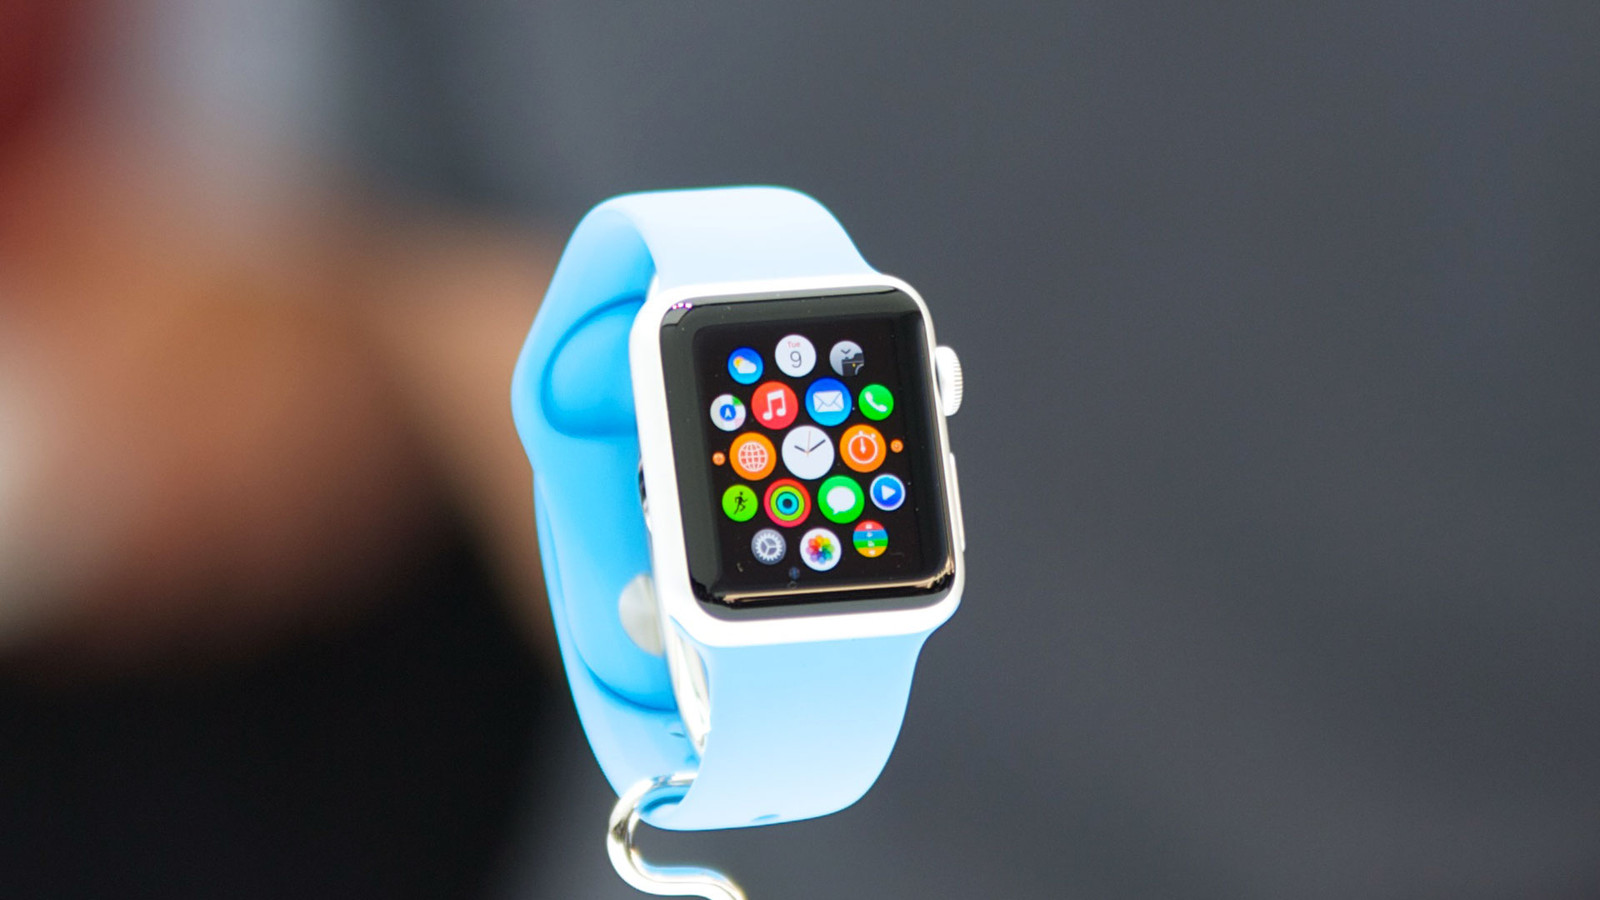 Buy Apple Watch and accessories at steep discounts!